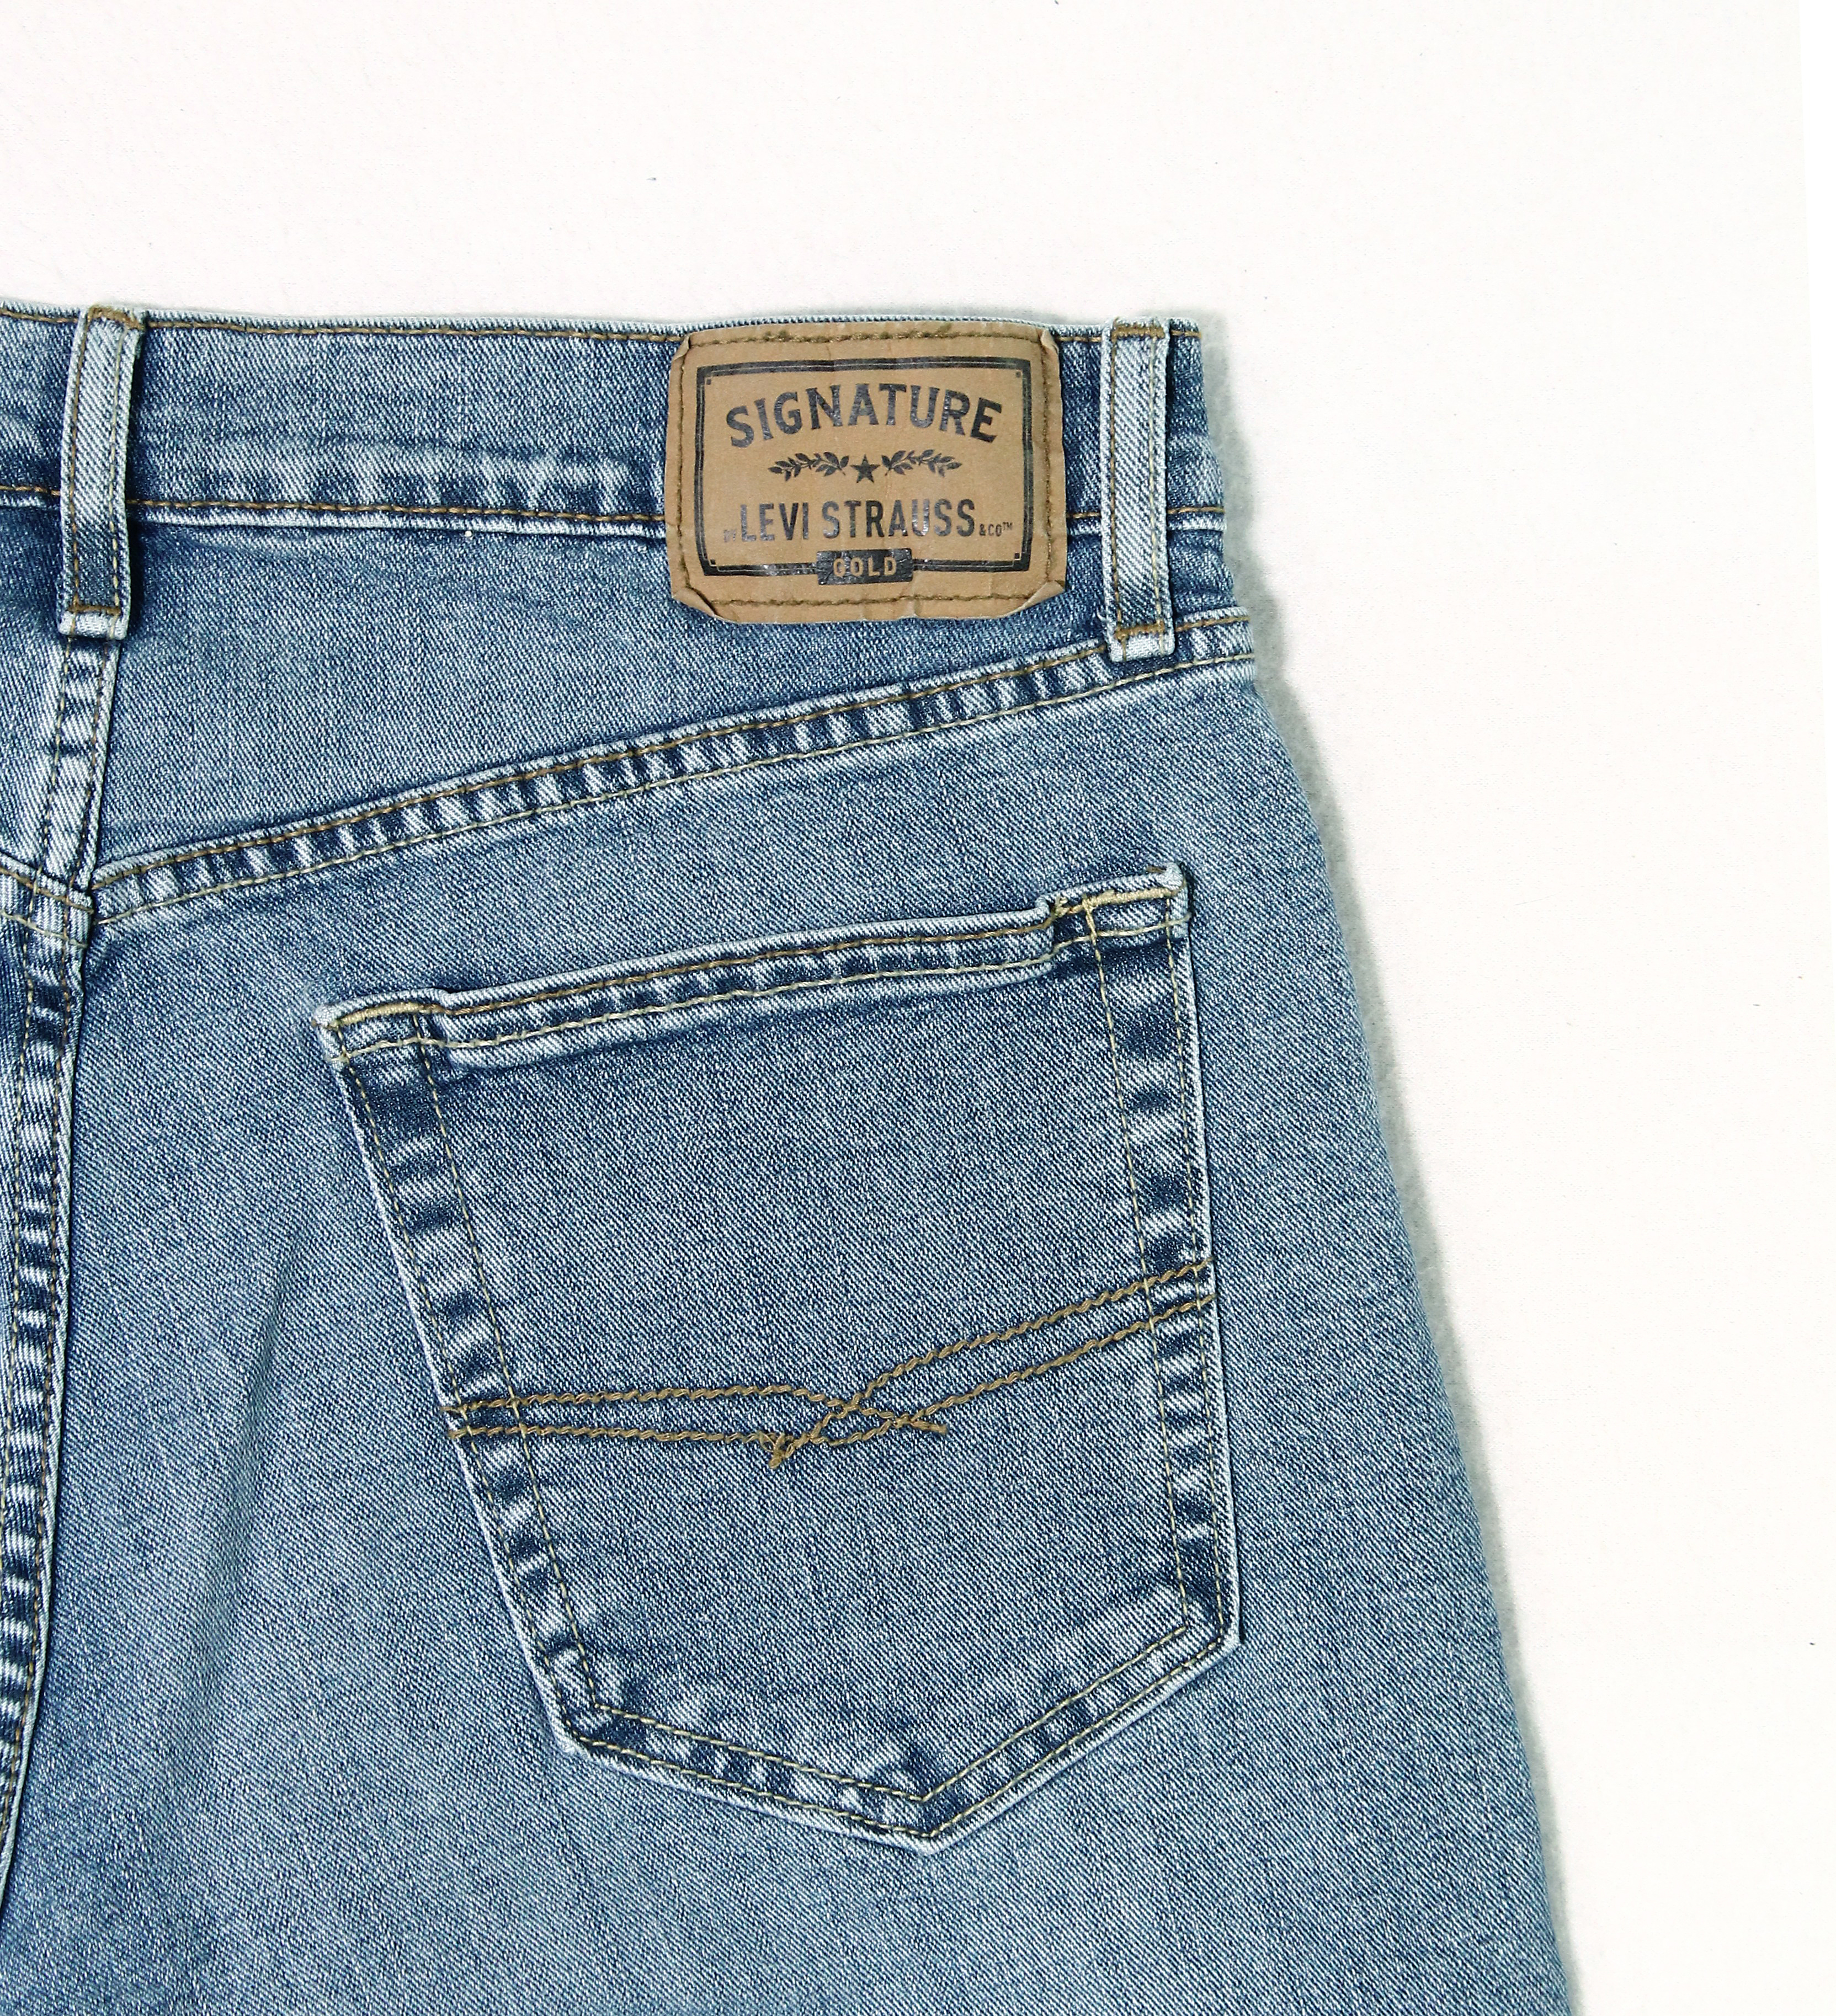 Levi-039-s-Jeans-Signature-Gold-by-Levi-Strauss-NEW-Titan-Blue-Men-Relaxed-Fit-Jeans thumbnail 6